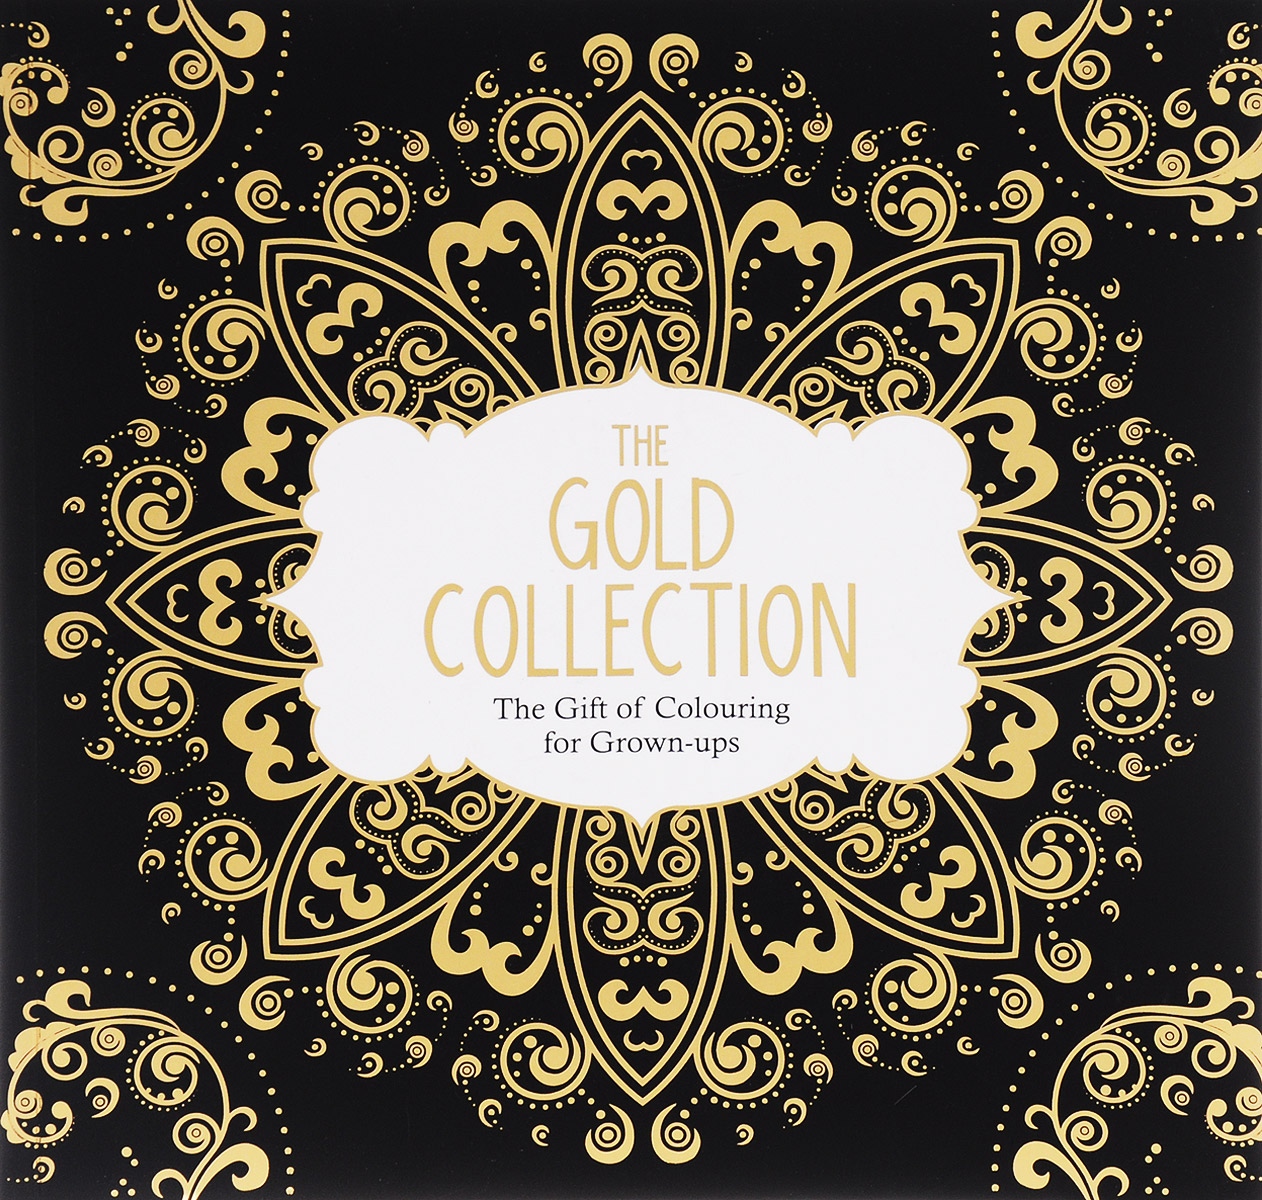 The Gold Collection: The Gift of Colouring for Grown-Ups artist 36 48 60 72 colors lapis de cor profissional cores safe non toxic watercolor pencils set for colouring books art supplies